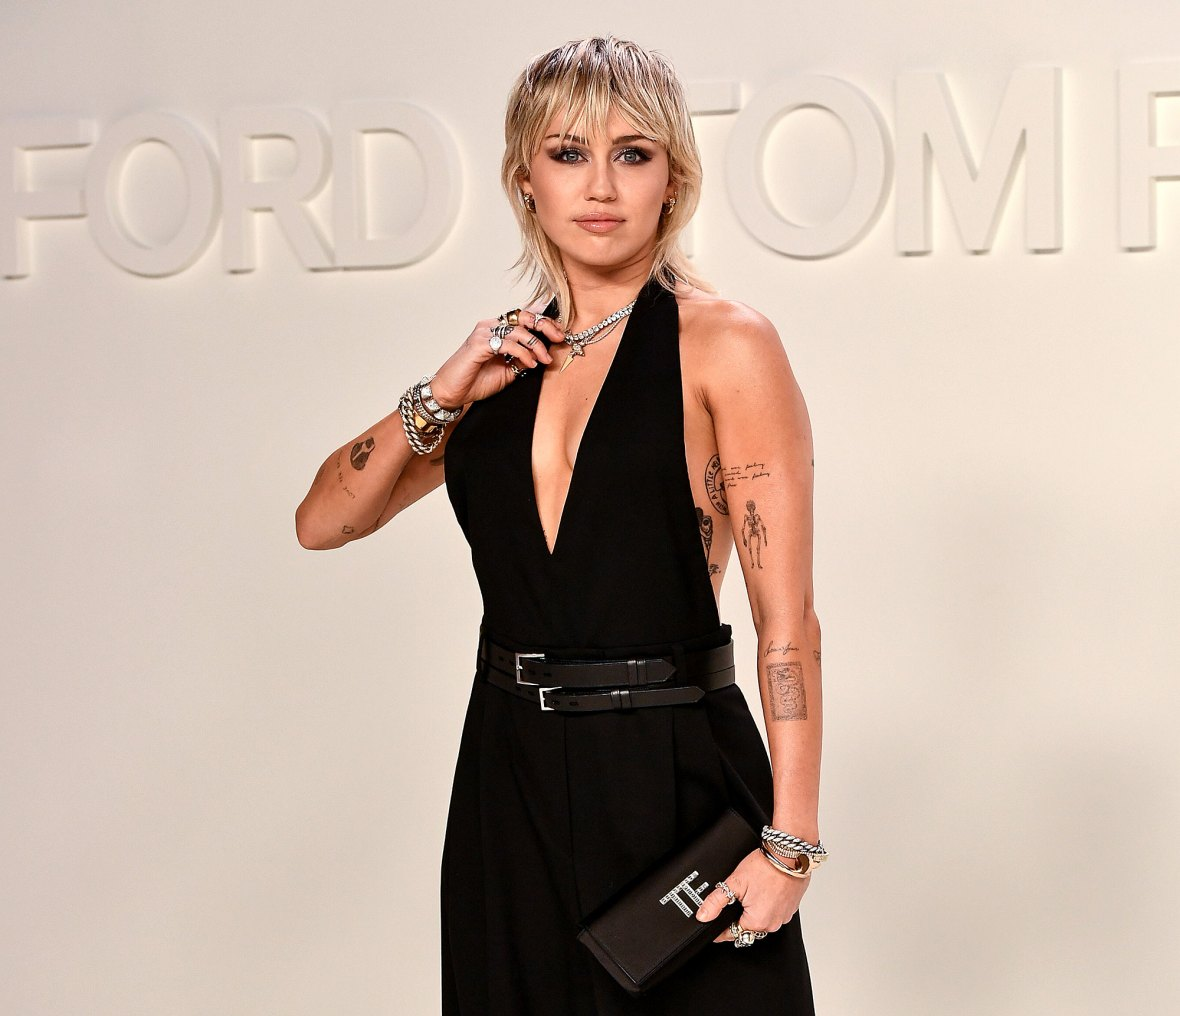 Miley Cyrus Single More Time To Strip After Cody Simpson Breakup